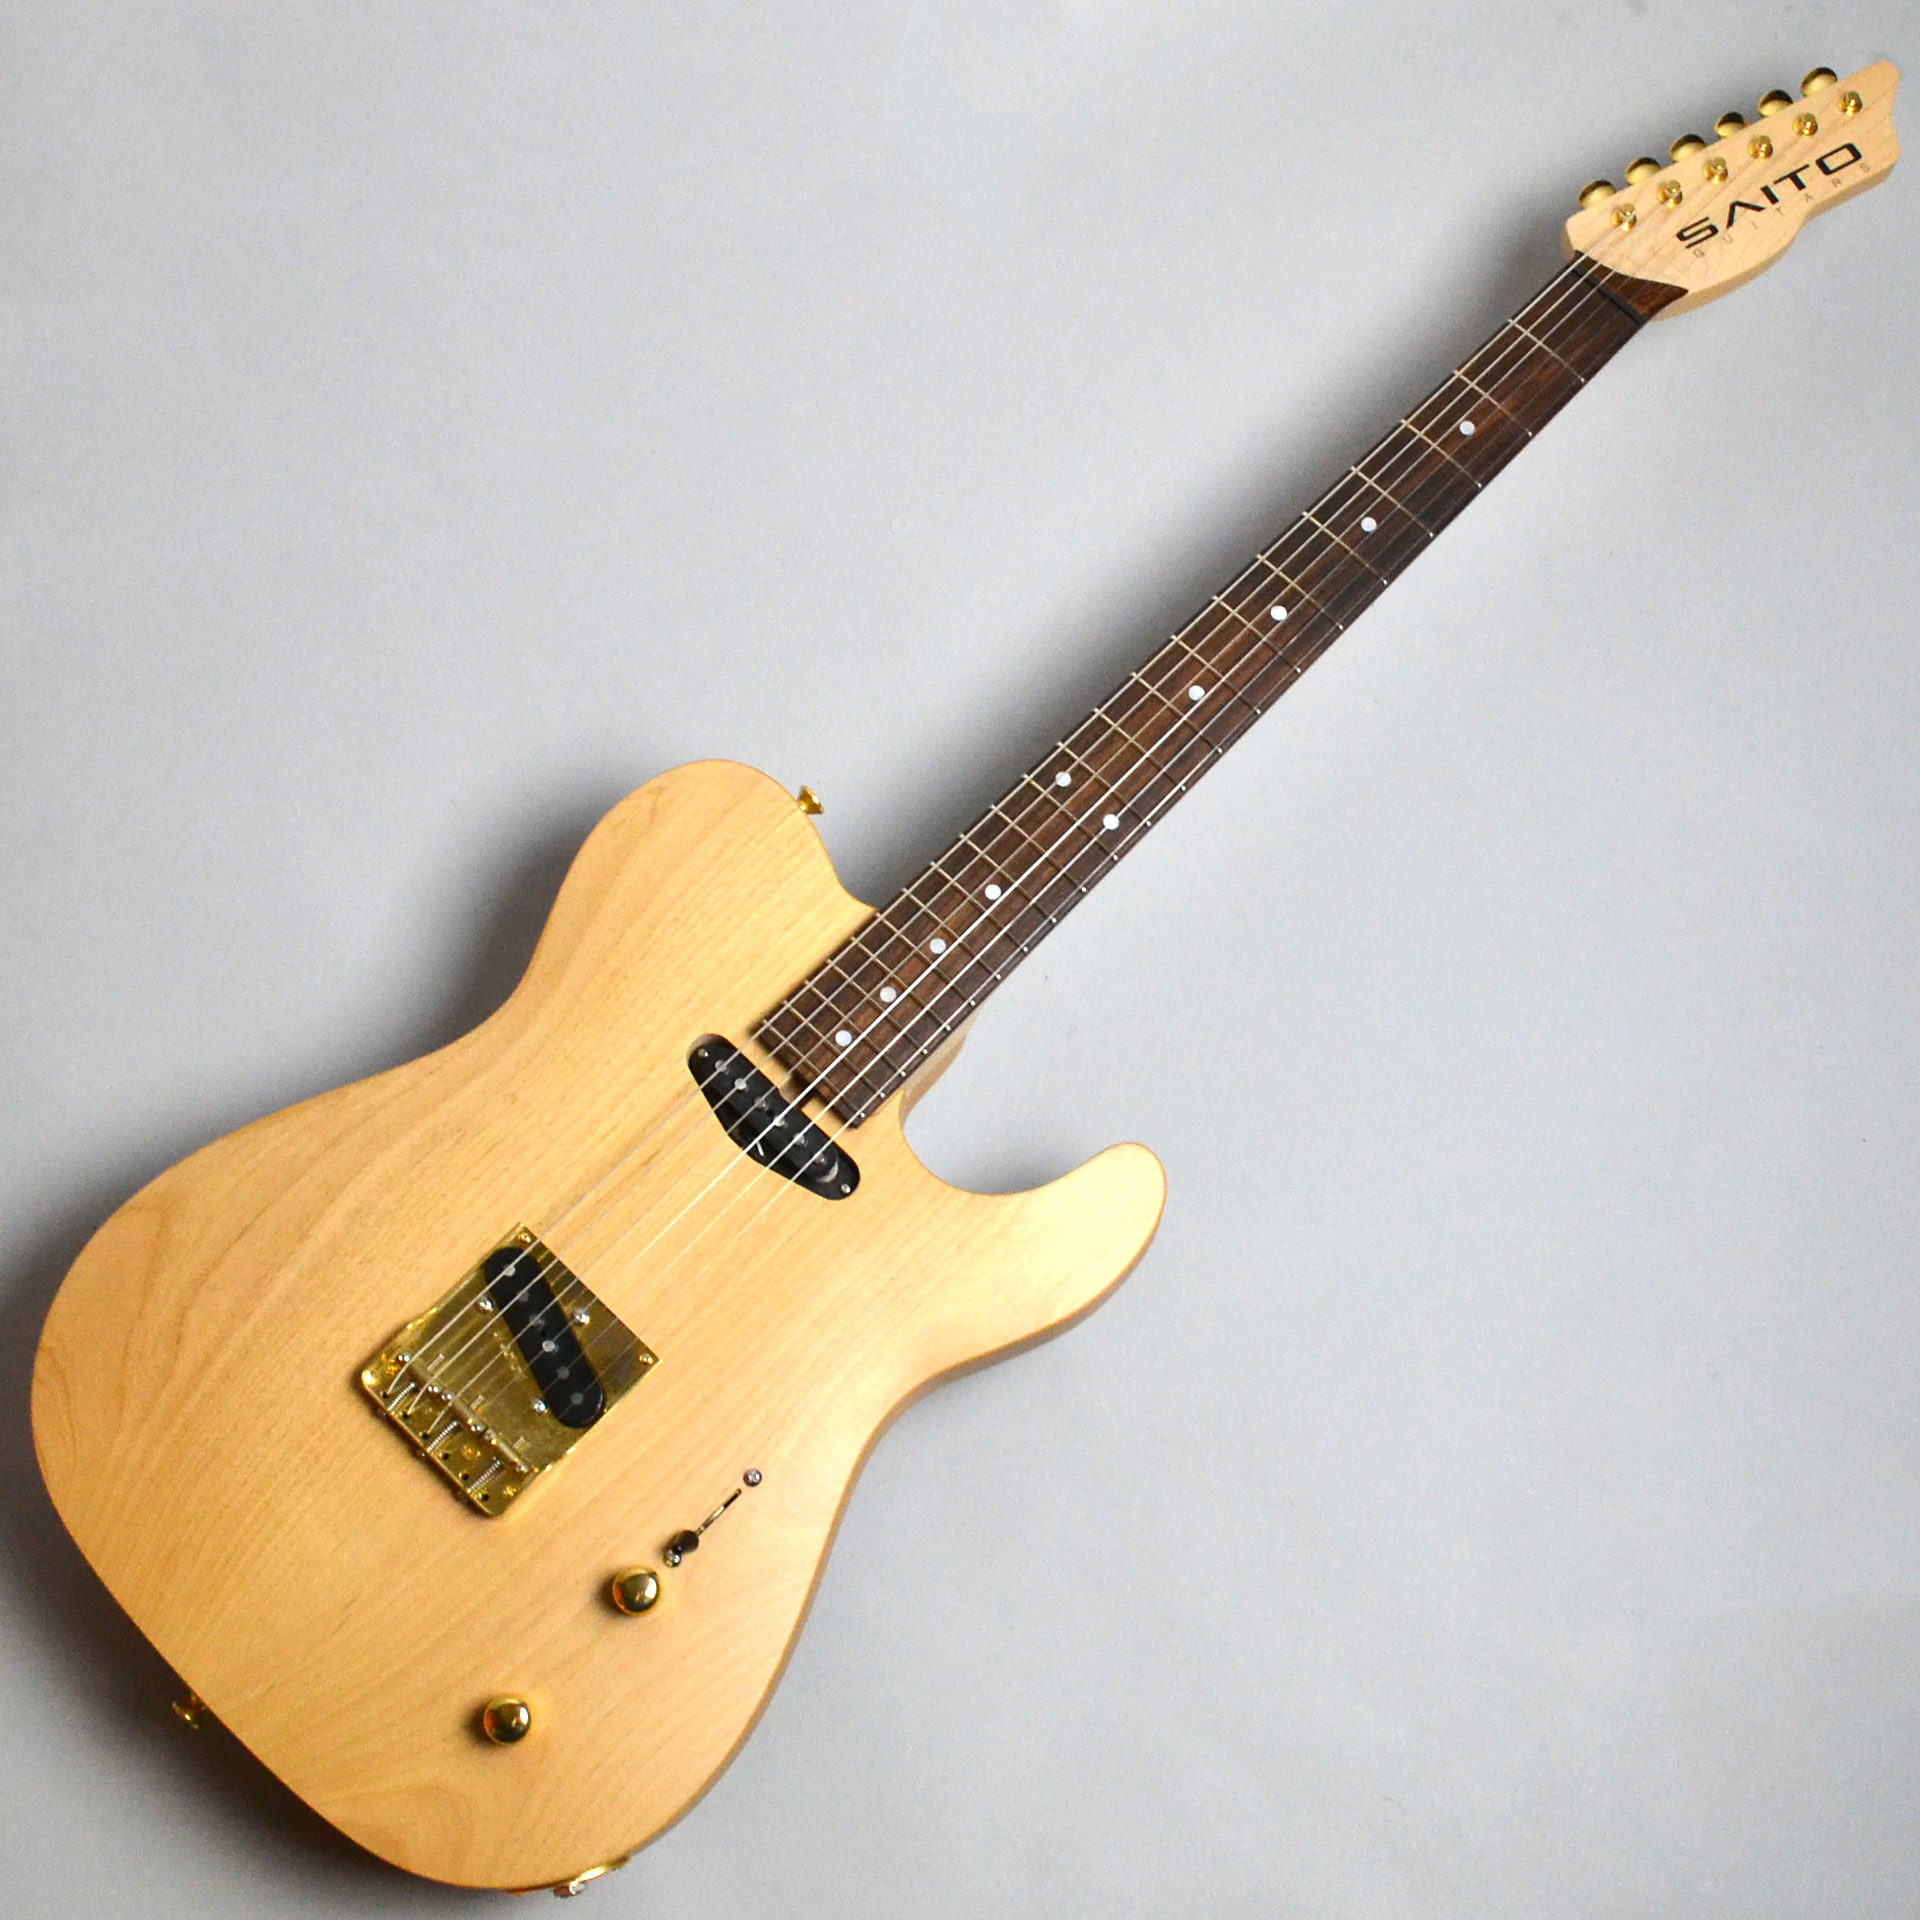 SAITO GUITARS S-622TLC/Ald/Rose NAT